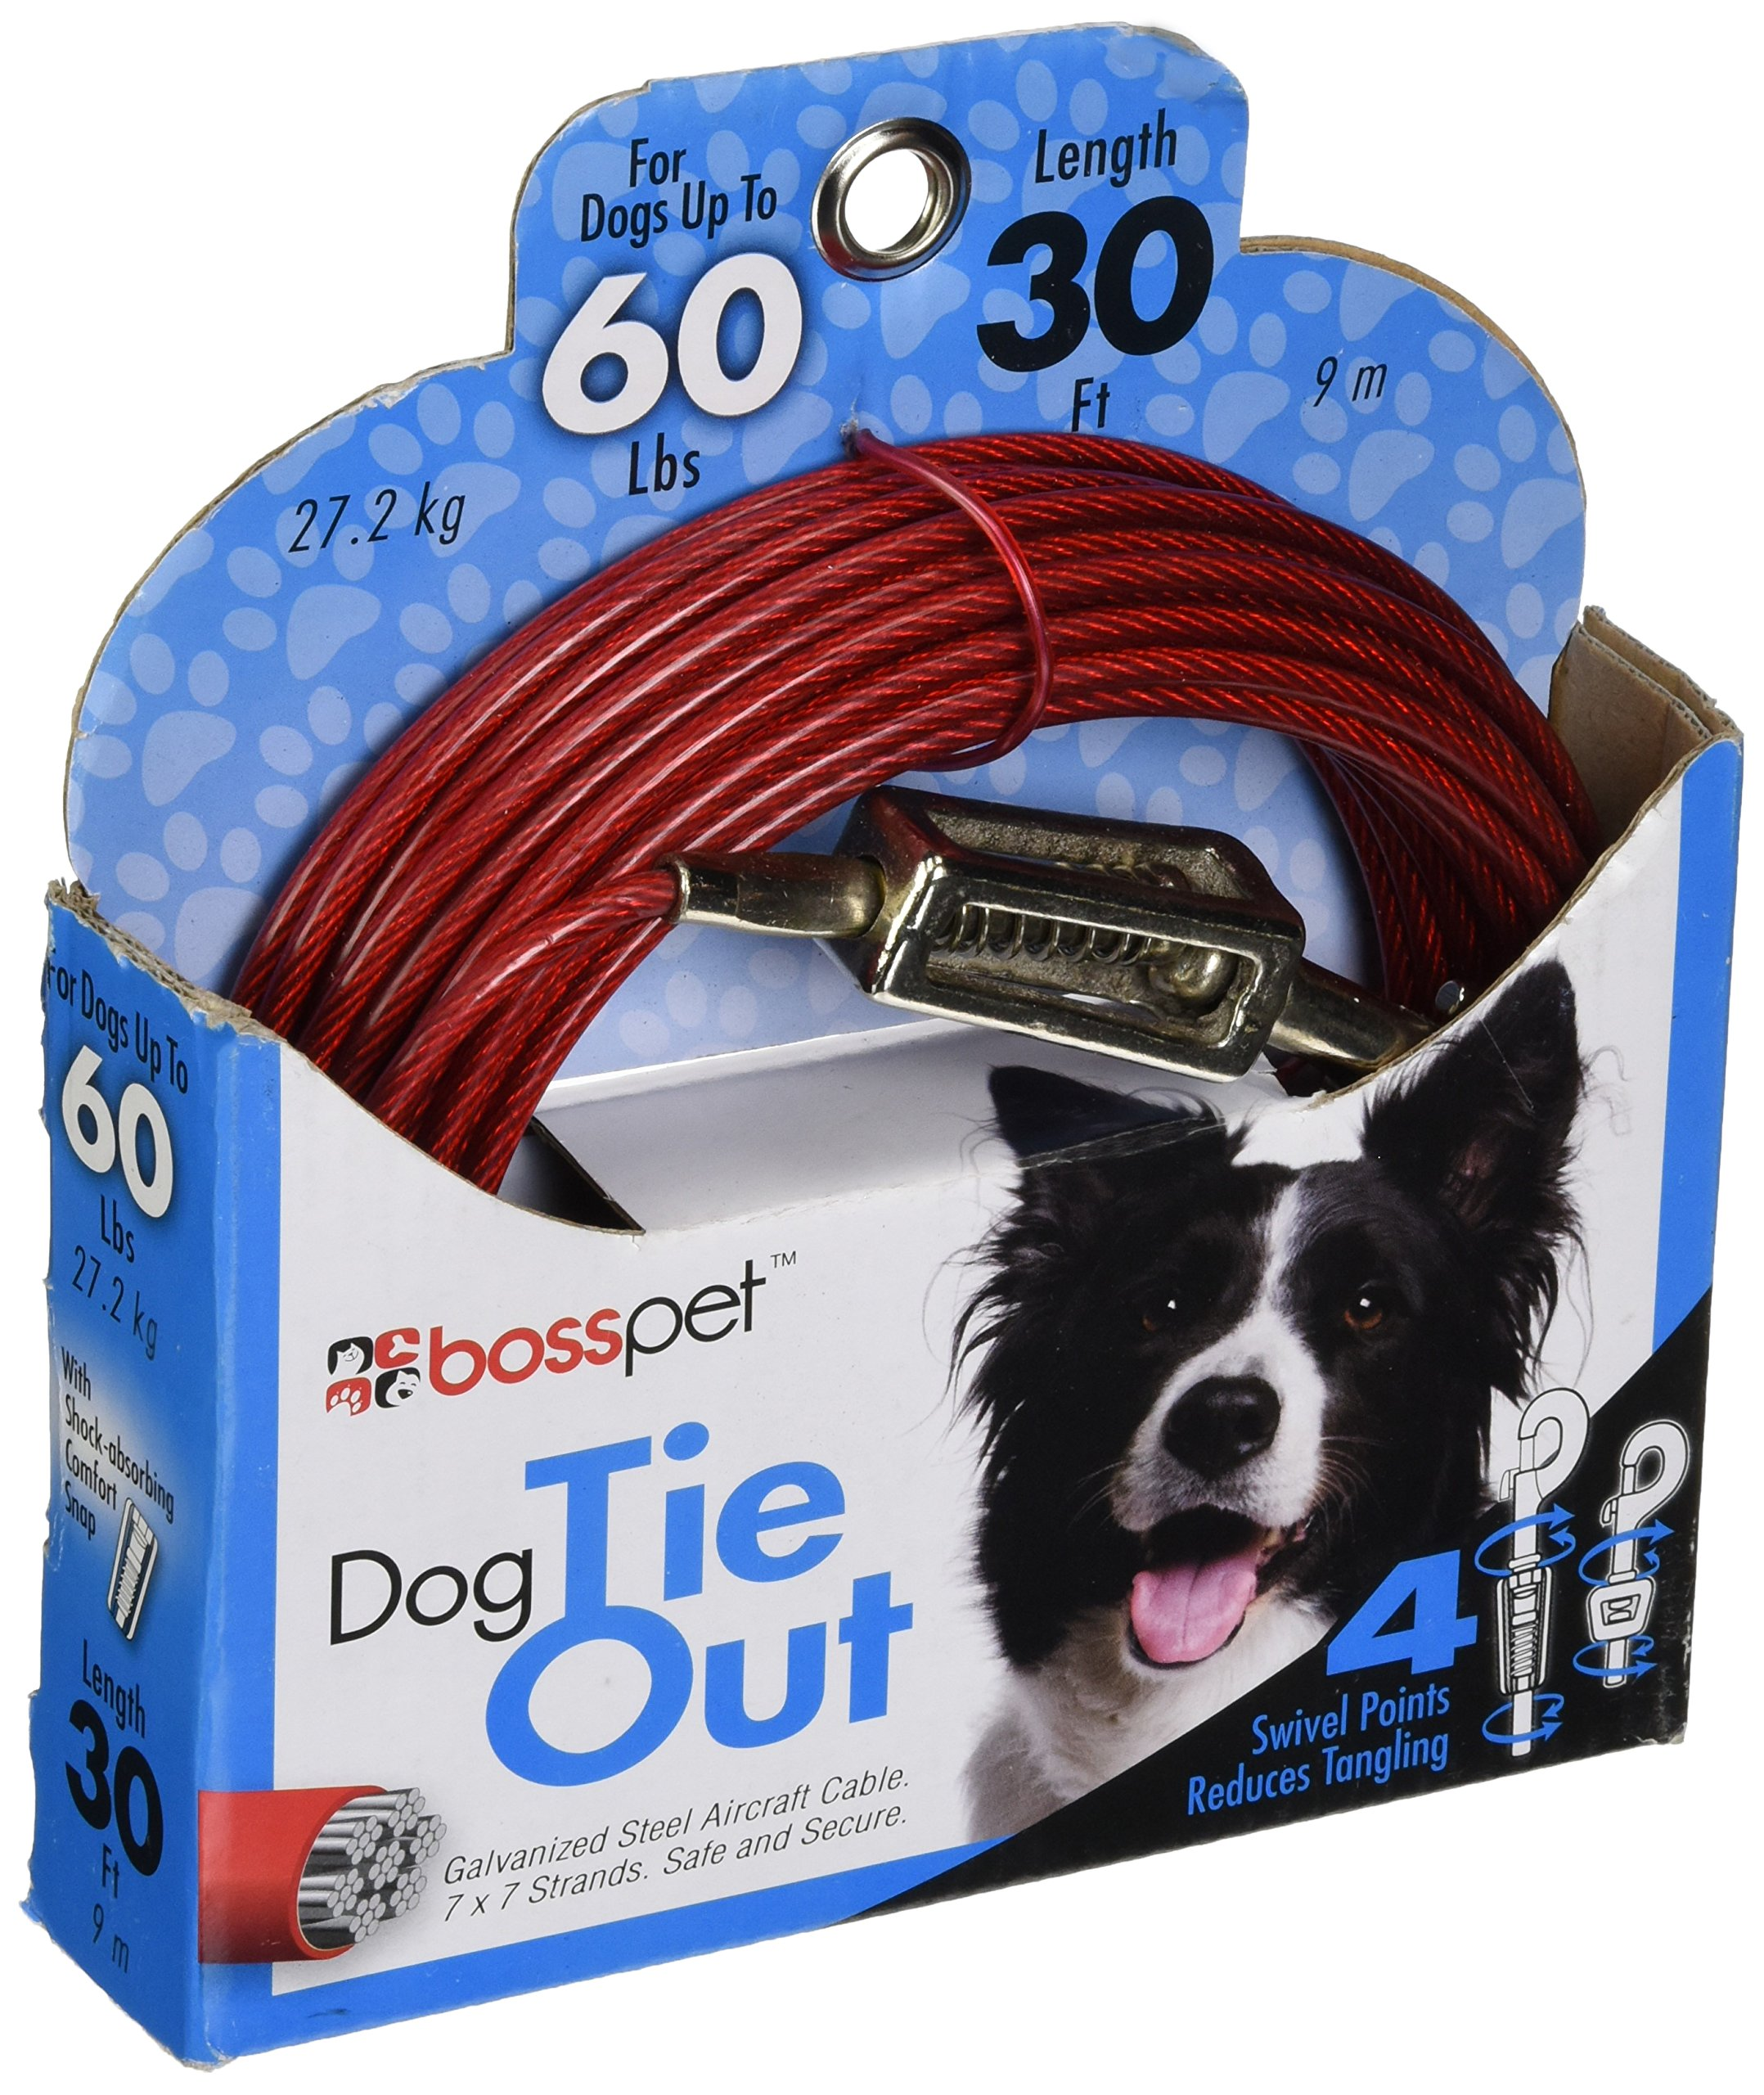 Boss Pet Products Q3530 SPG 99 Cable Dog Tie Out 30 Large